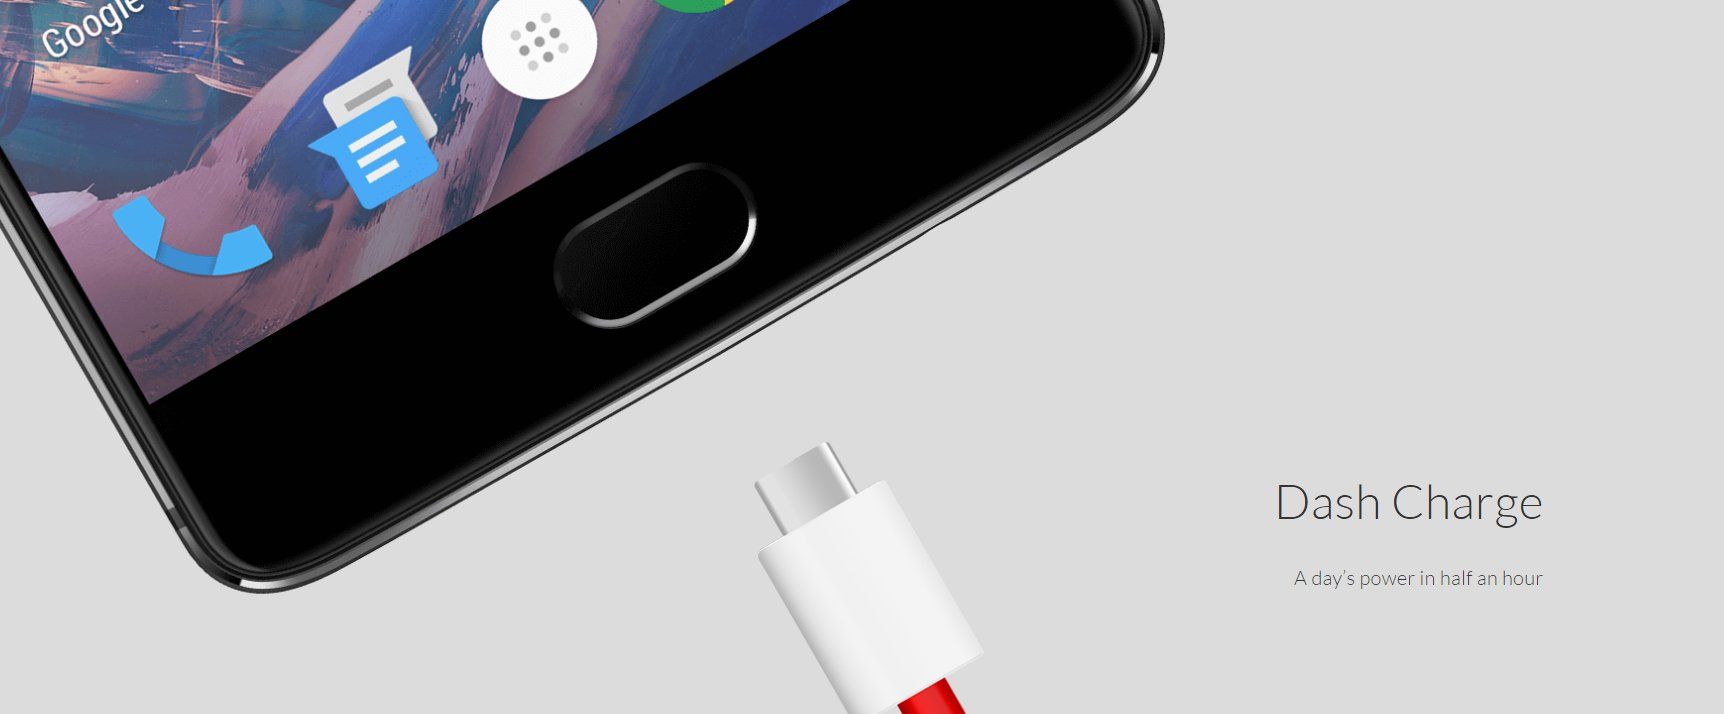 OnePlus-3-type-c-charger